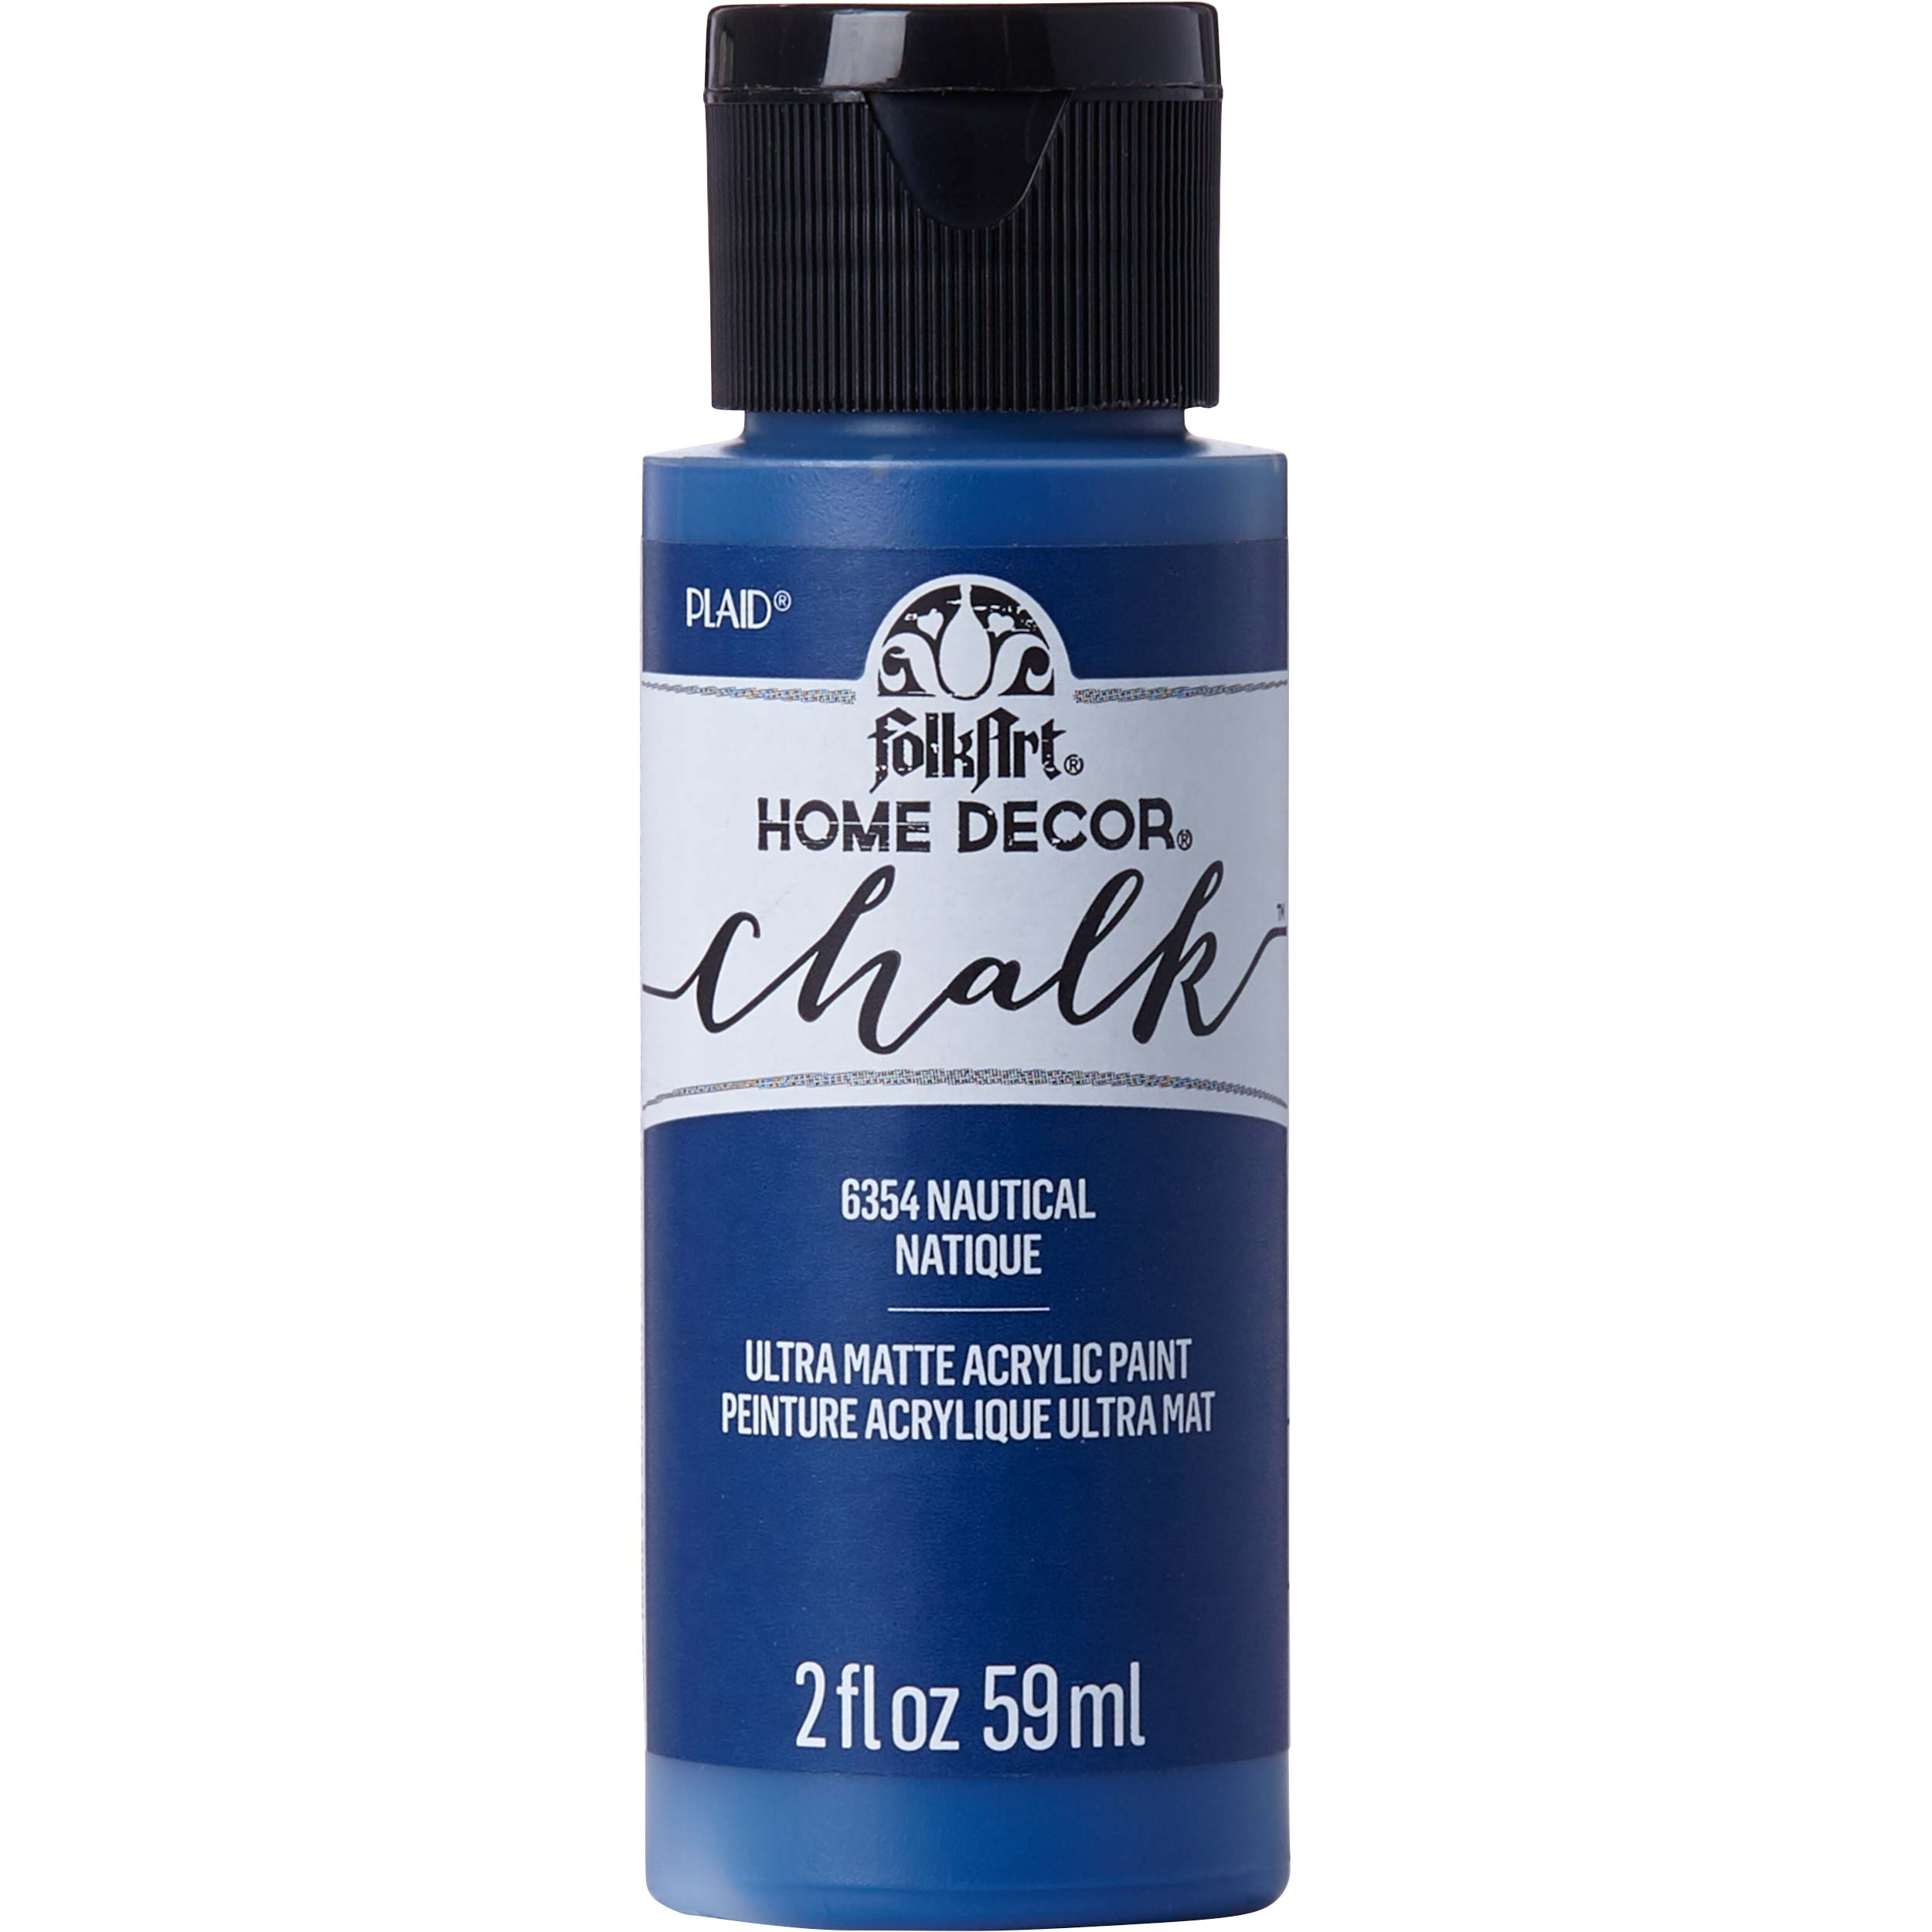 FolkArt ® Home Decor™ Chalk - Nautical, 2 oz. - 6354